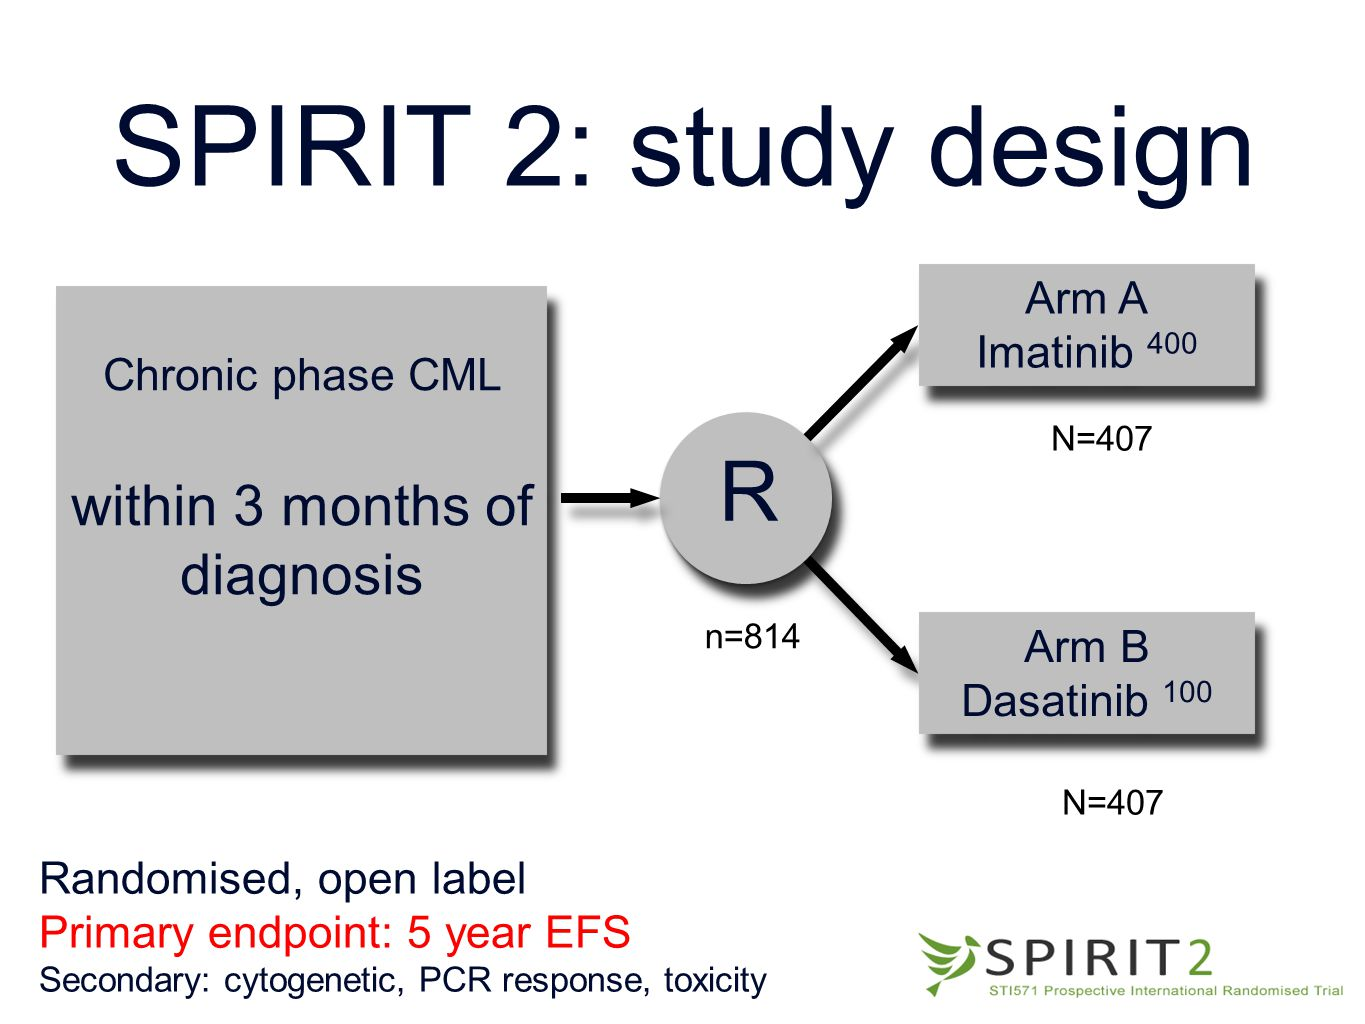 SPIRIT 2: study design Chronic phase CML within 3 months of diagnosis Chronic phase CML within 3 months of diagnosis Arm A Imatinib 400 Arm A Imatinib